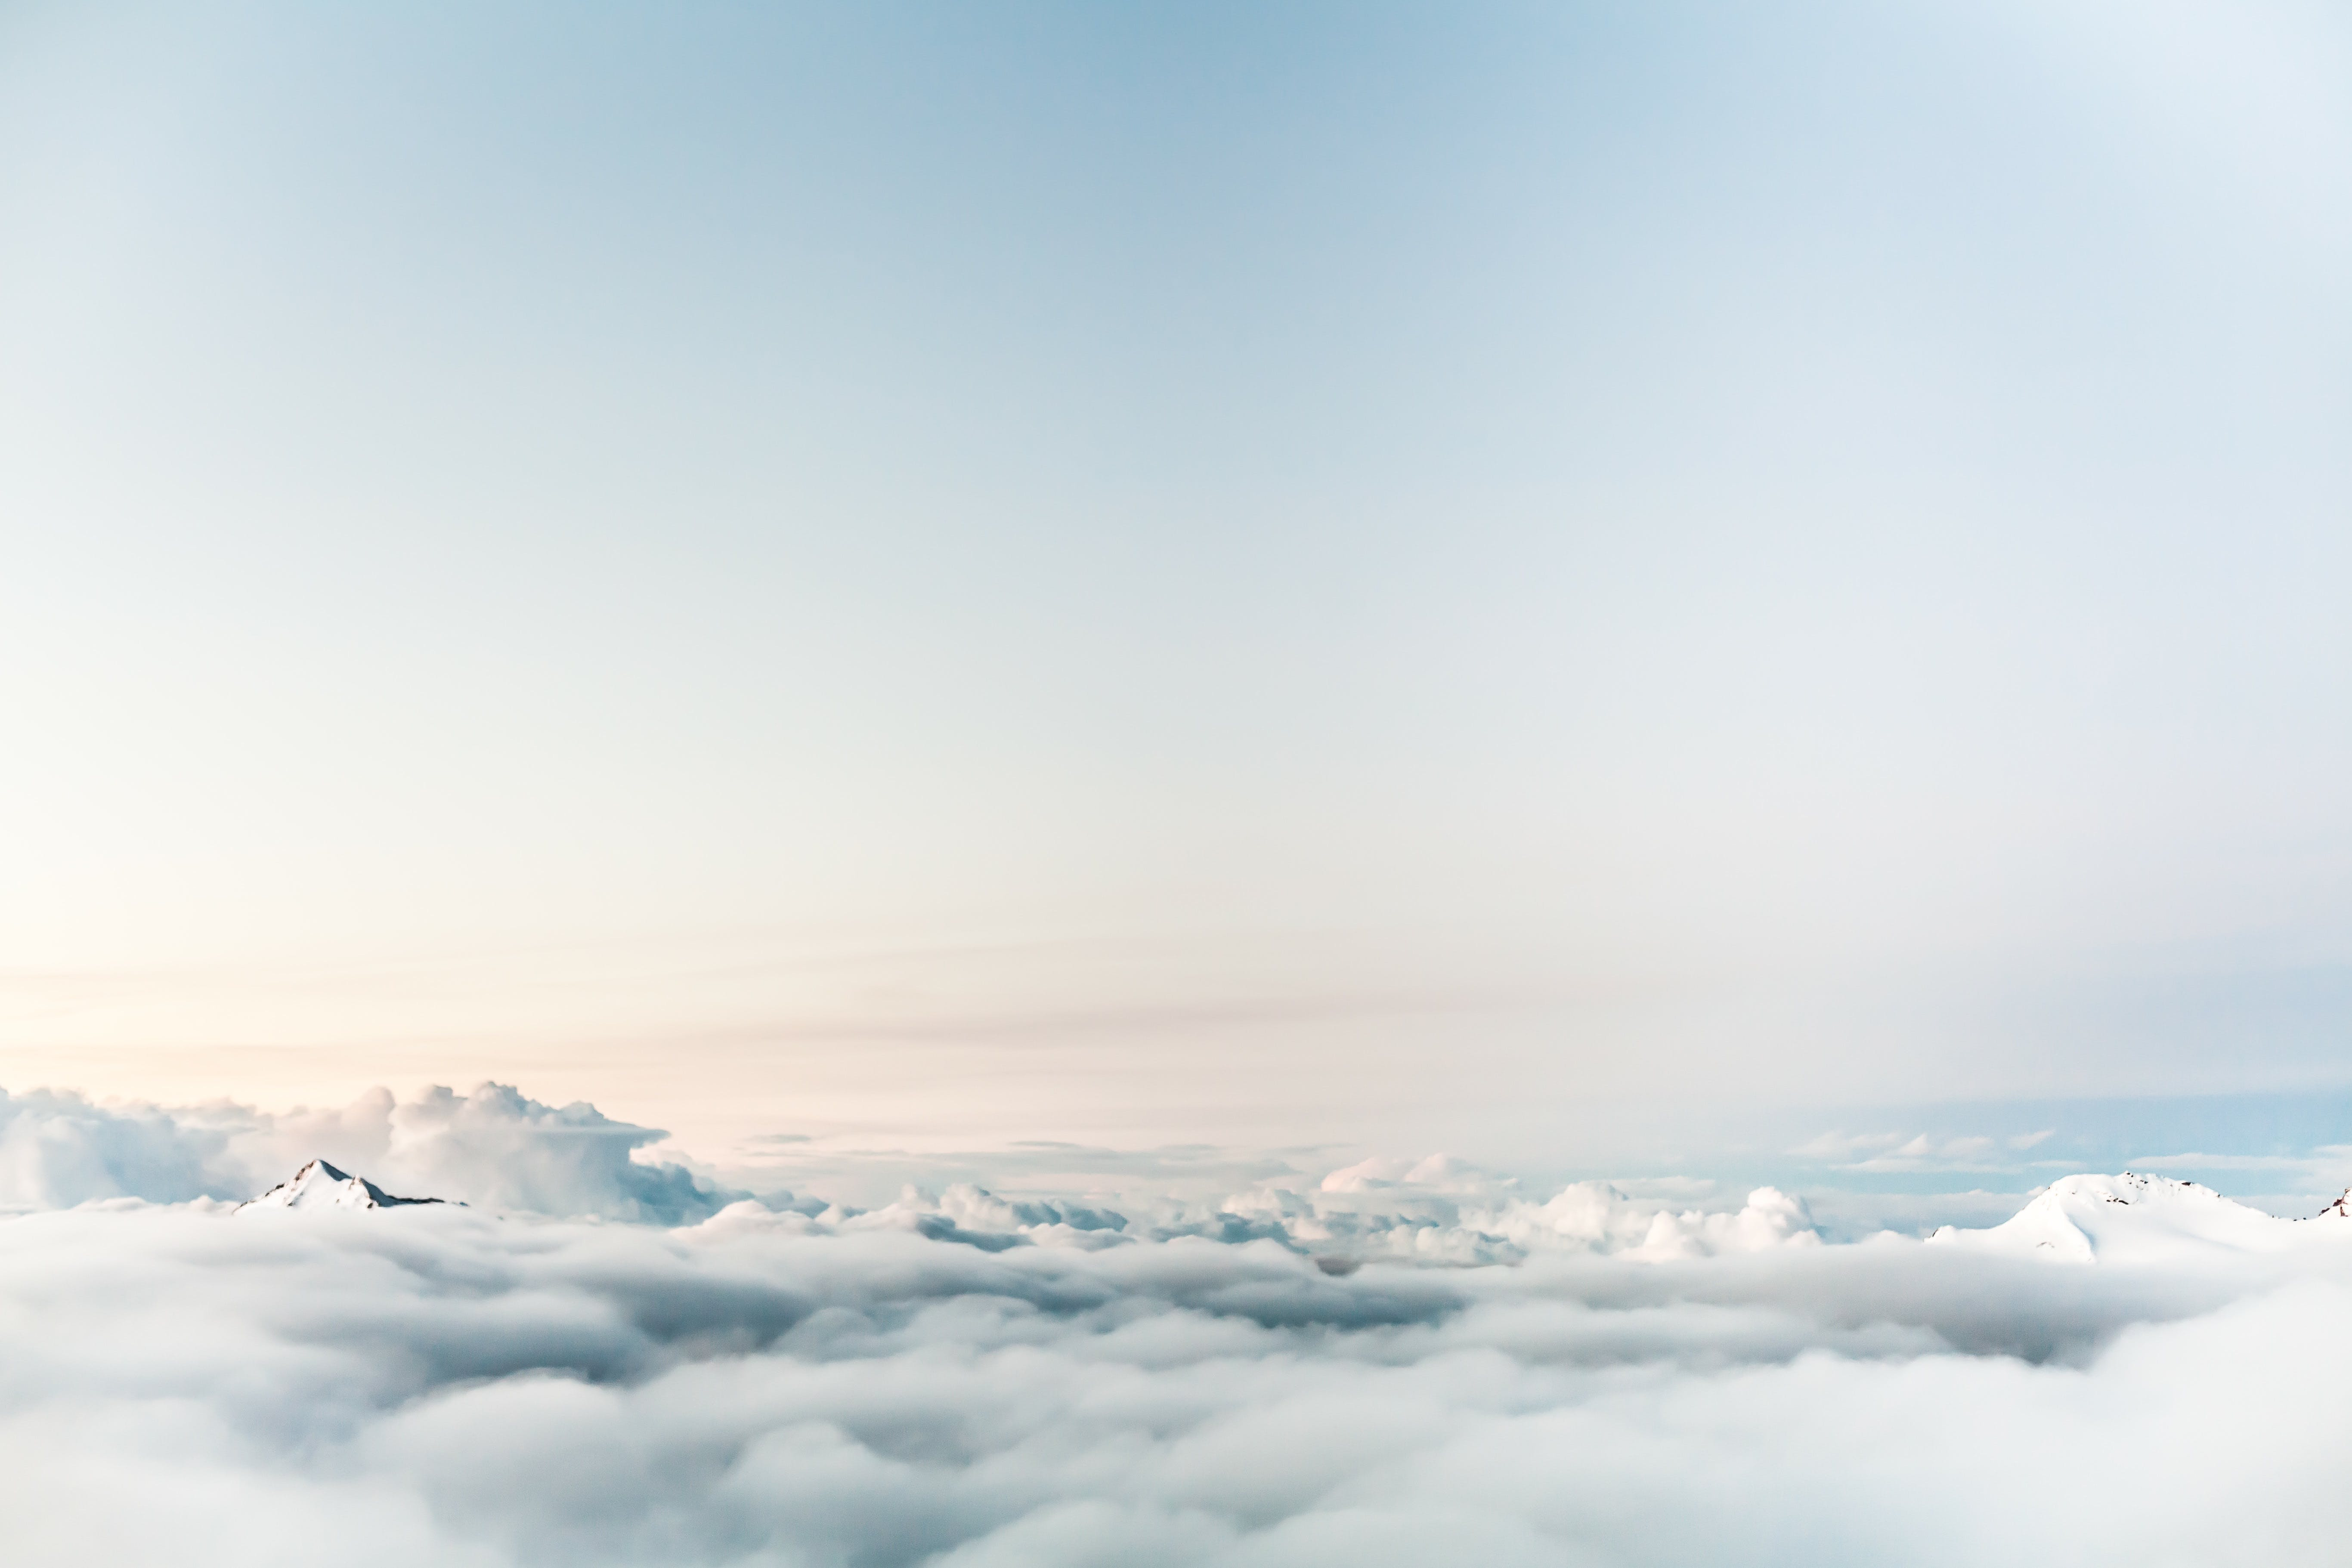 above, atmosphere, clouds